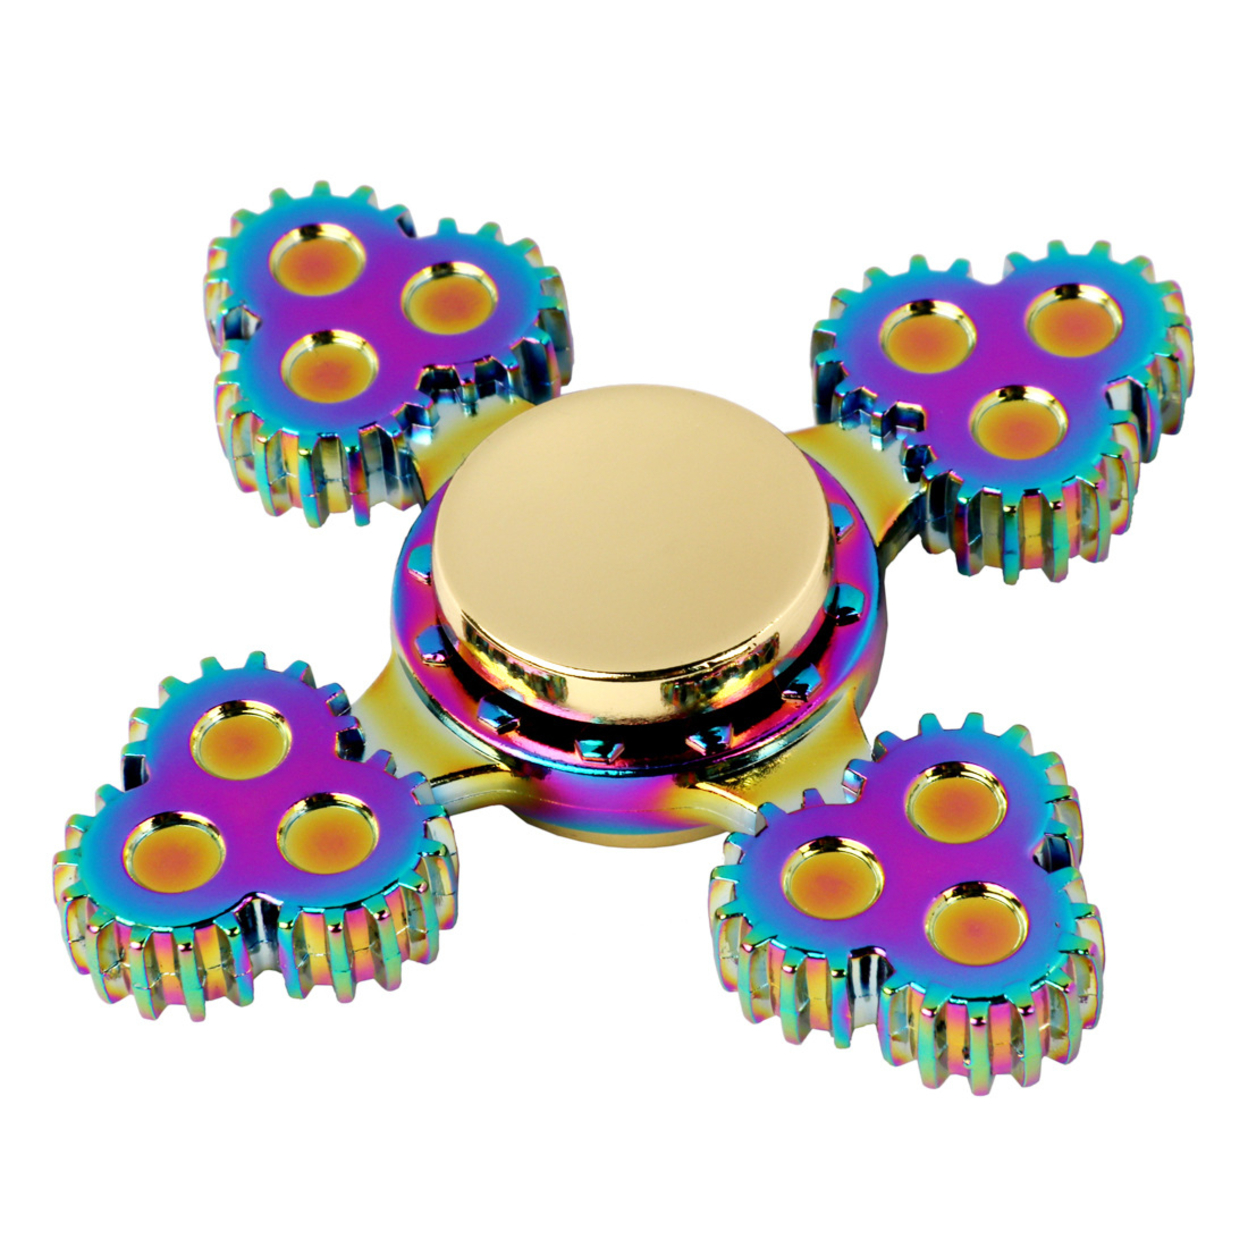 1x US Stock Four Fidget Alloy Hand Spinner Focus Toy EDC Finger Spin Gyro Adhd 59c4be3c2a00e469040264e0